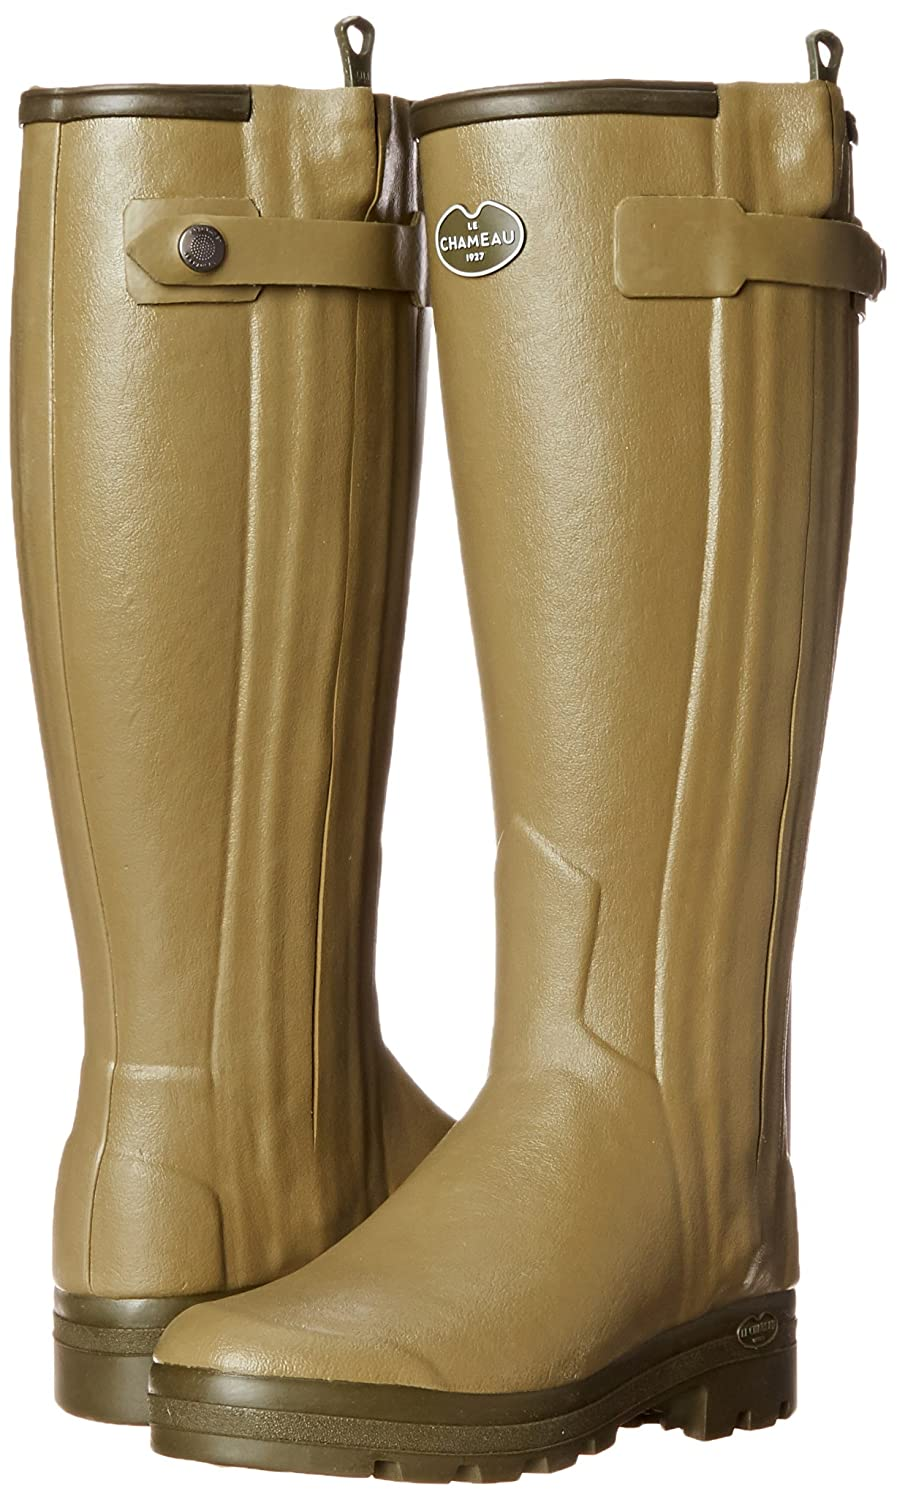 Cuir Wellington Chameau Chasseur Le Boot M1541627358 Mens eE2IWHYD9